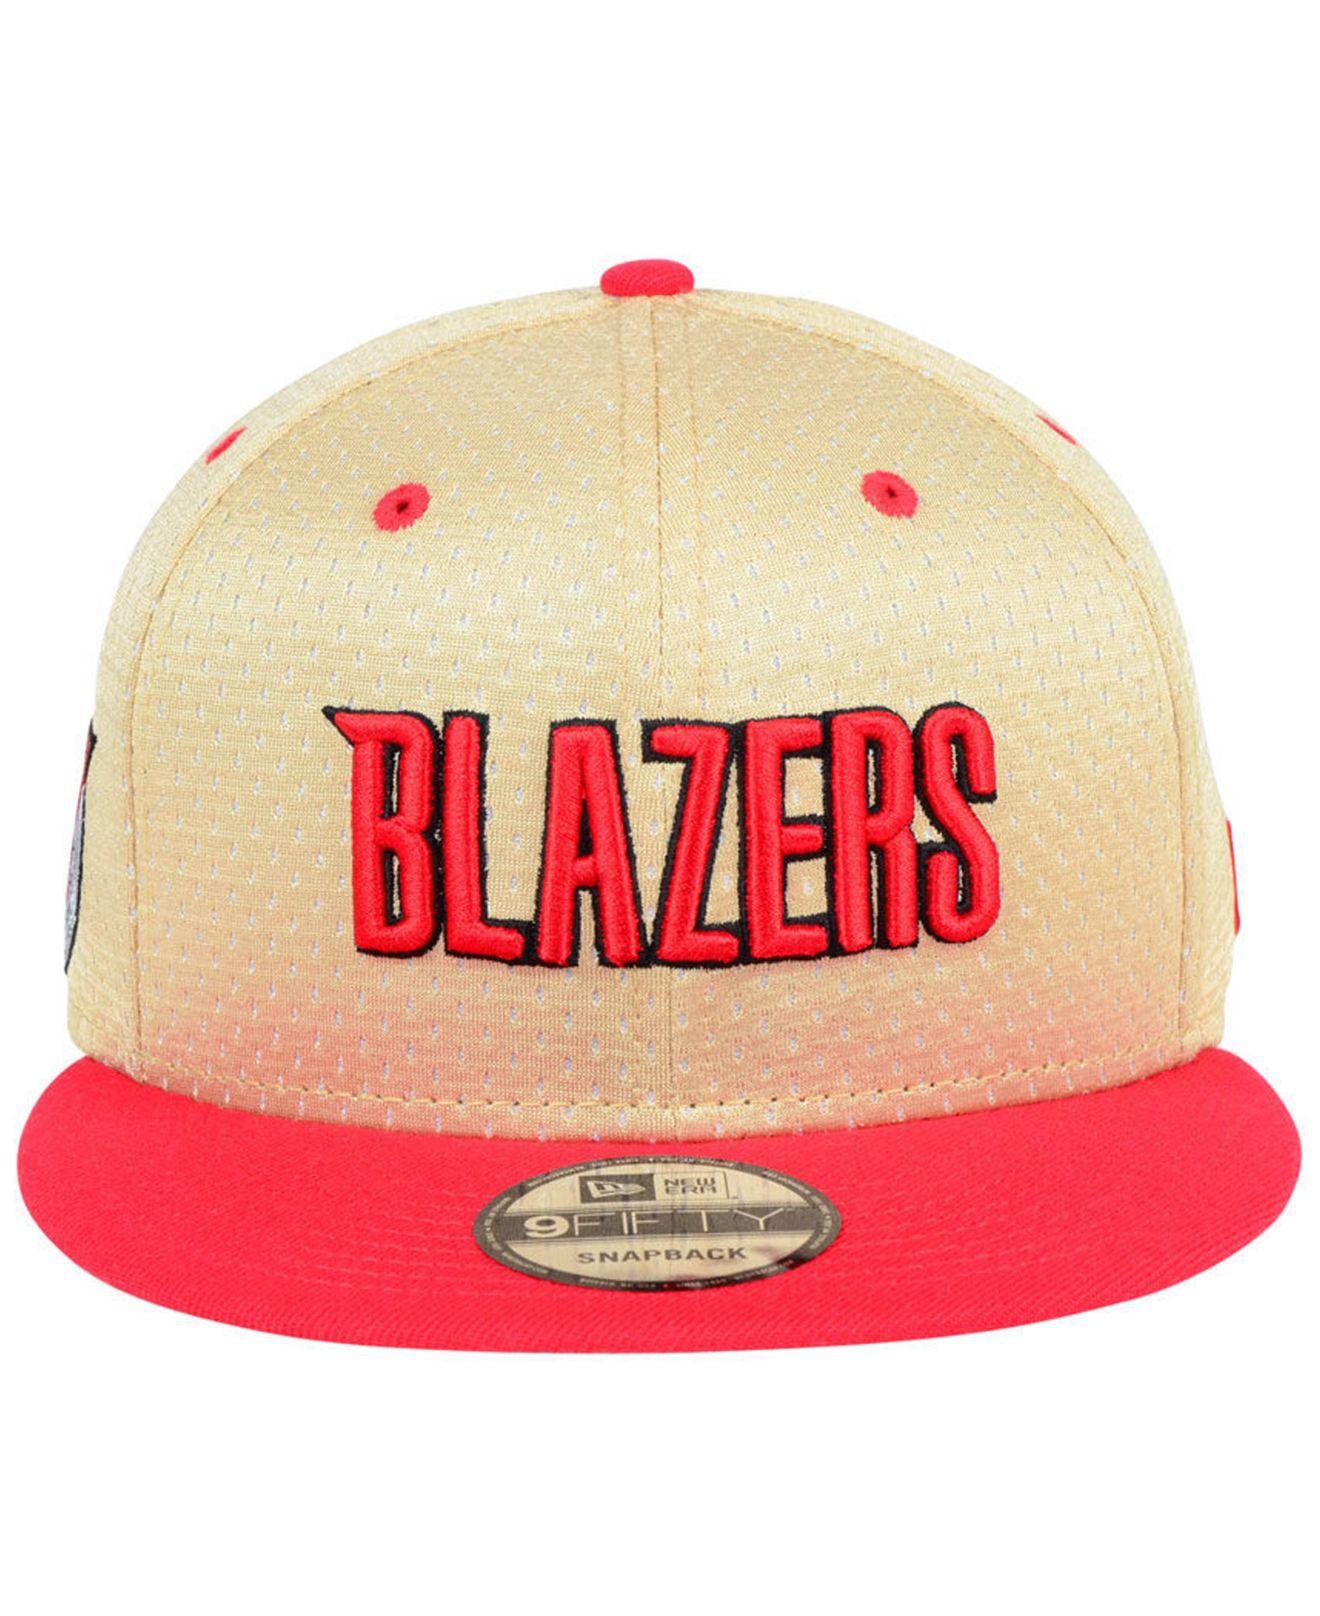 half off 92766 7950b ... greece lyst ktz portland trail blazers champagne 9fifty snapback cap in  red for men 9d840 6a503